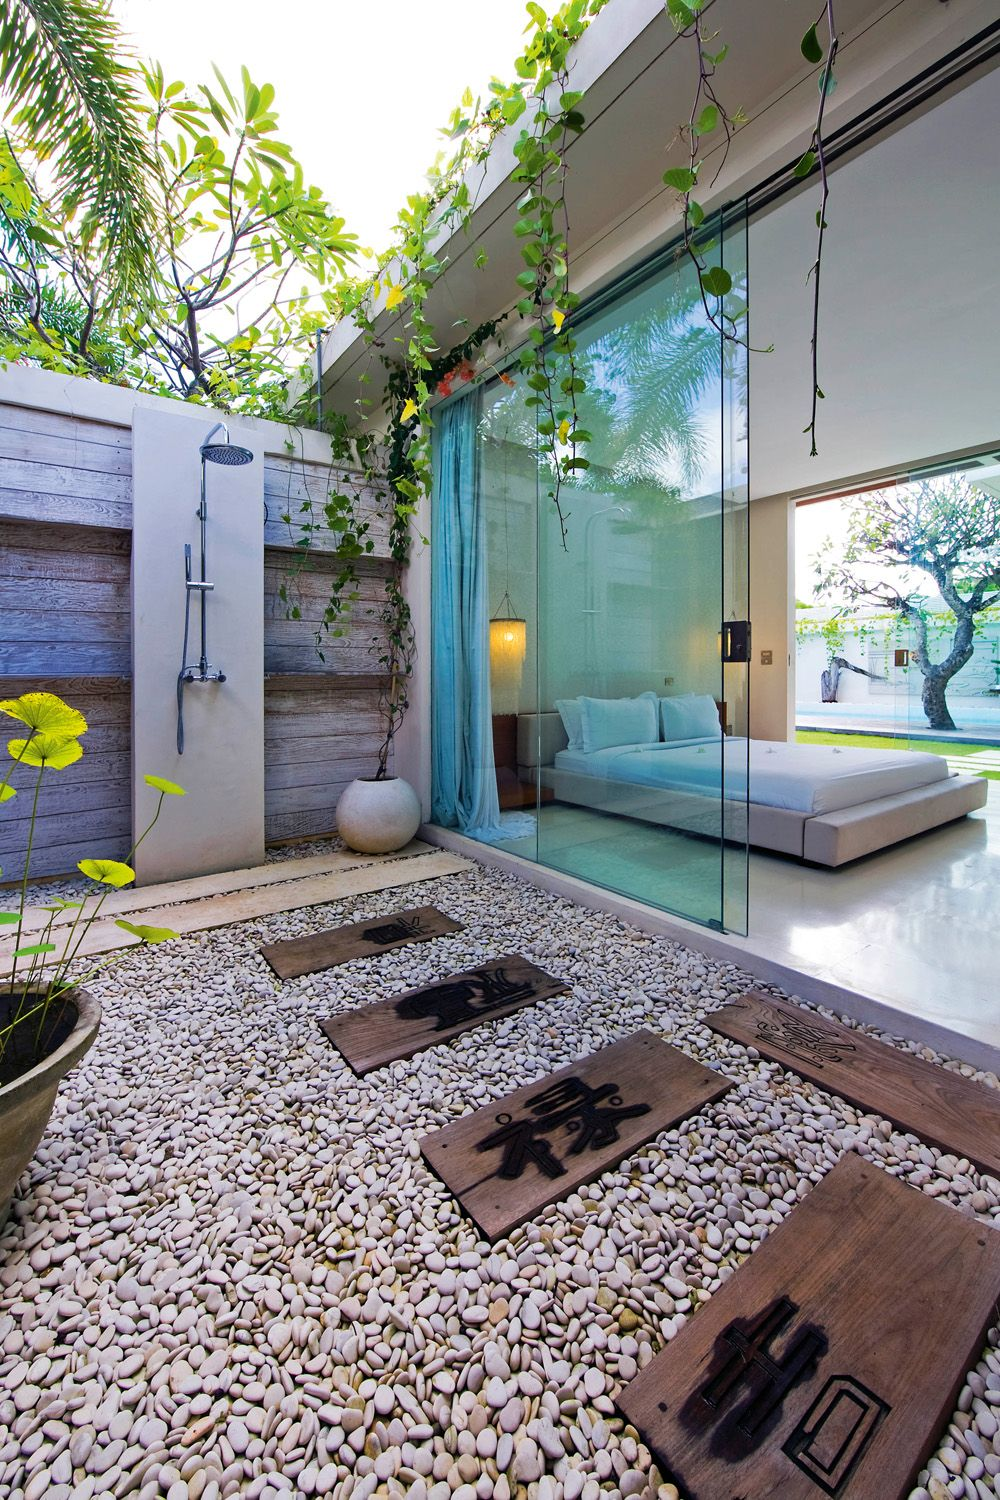 With An Outdoor Bathroom Or Shower Area You Can Revel In